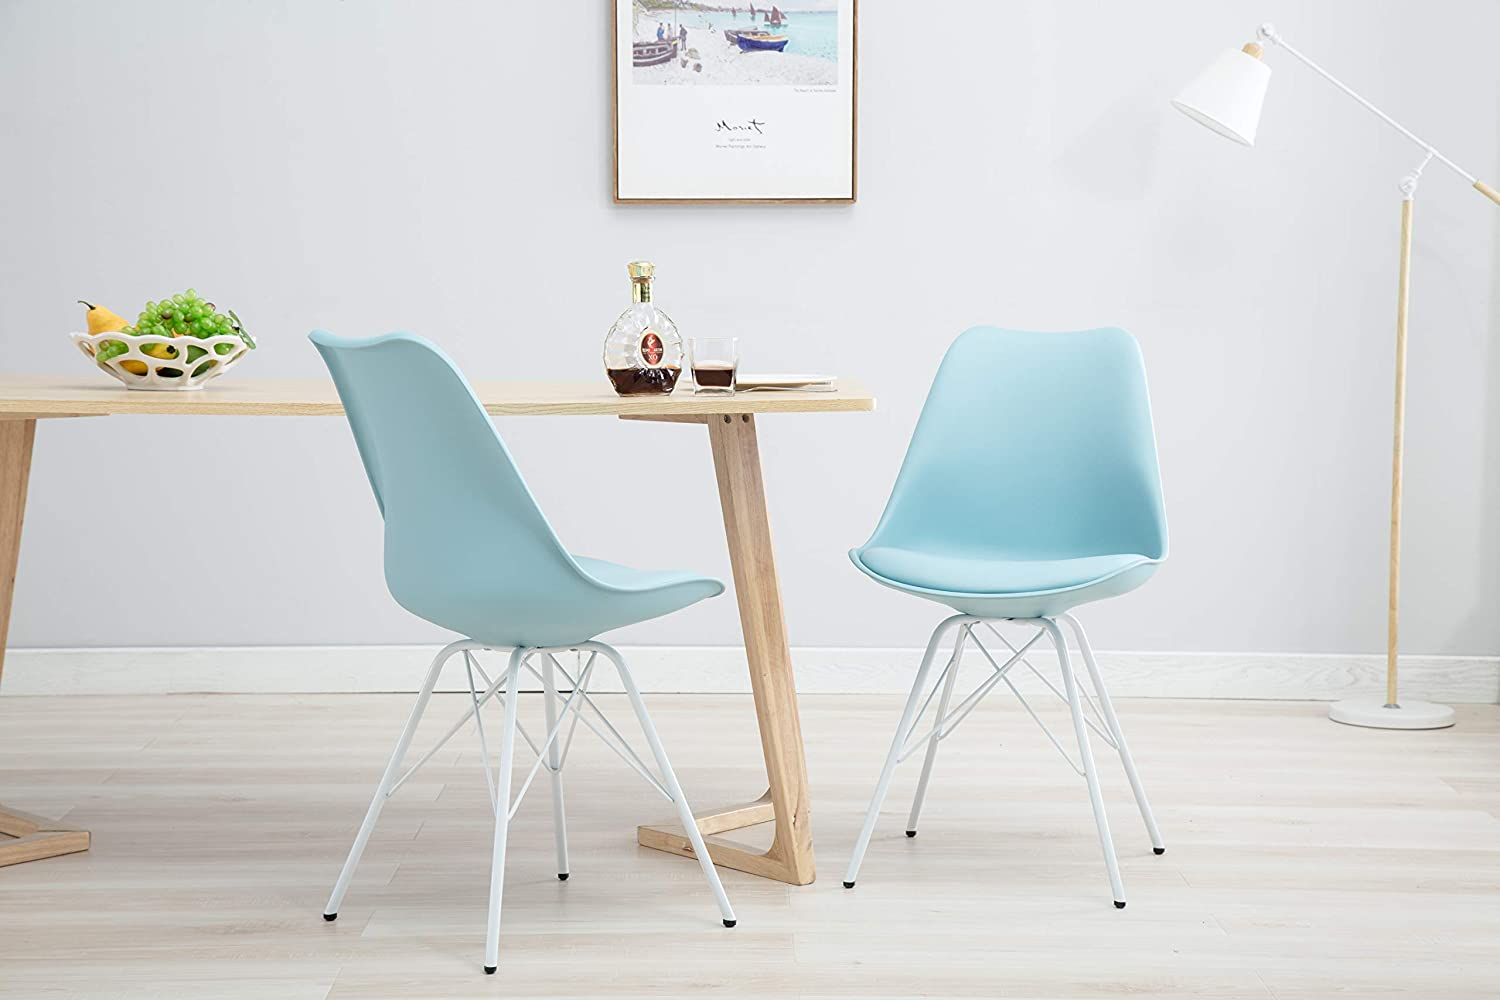 Porthos Home LVC011A blue Midcentury Modern Eames Style DSR Dining Room Chair with Unique White Wire Metal Base, Easy Assembly, One Size, bluee